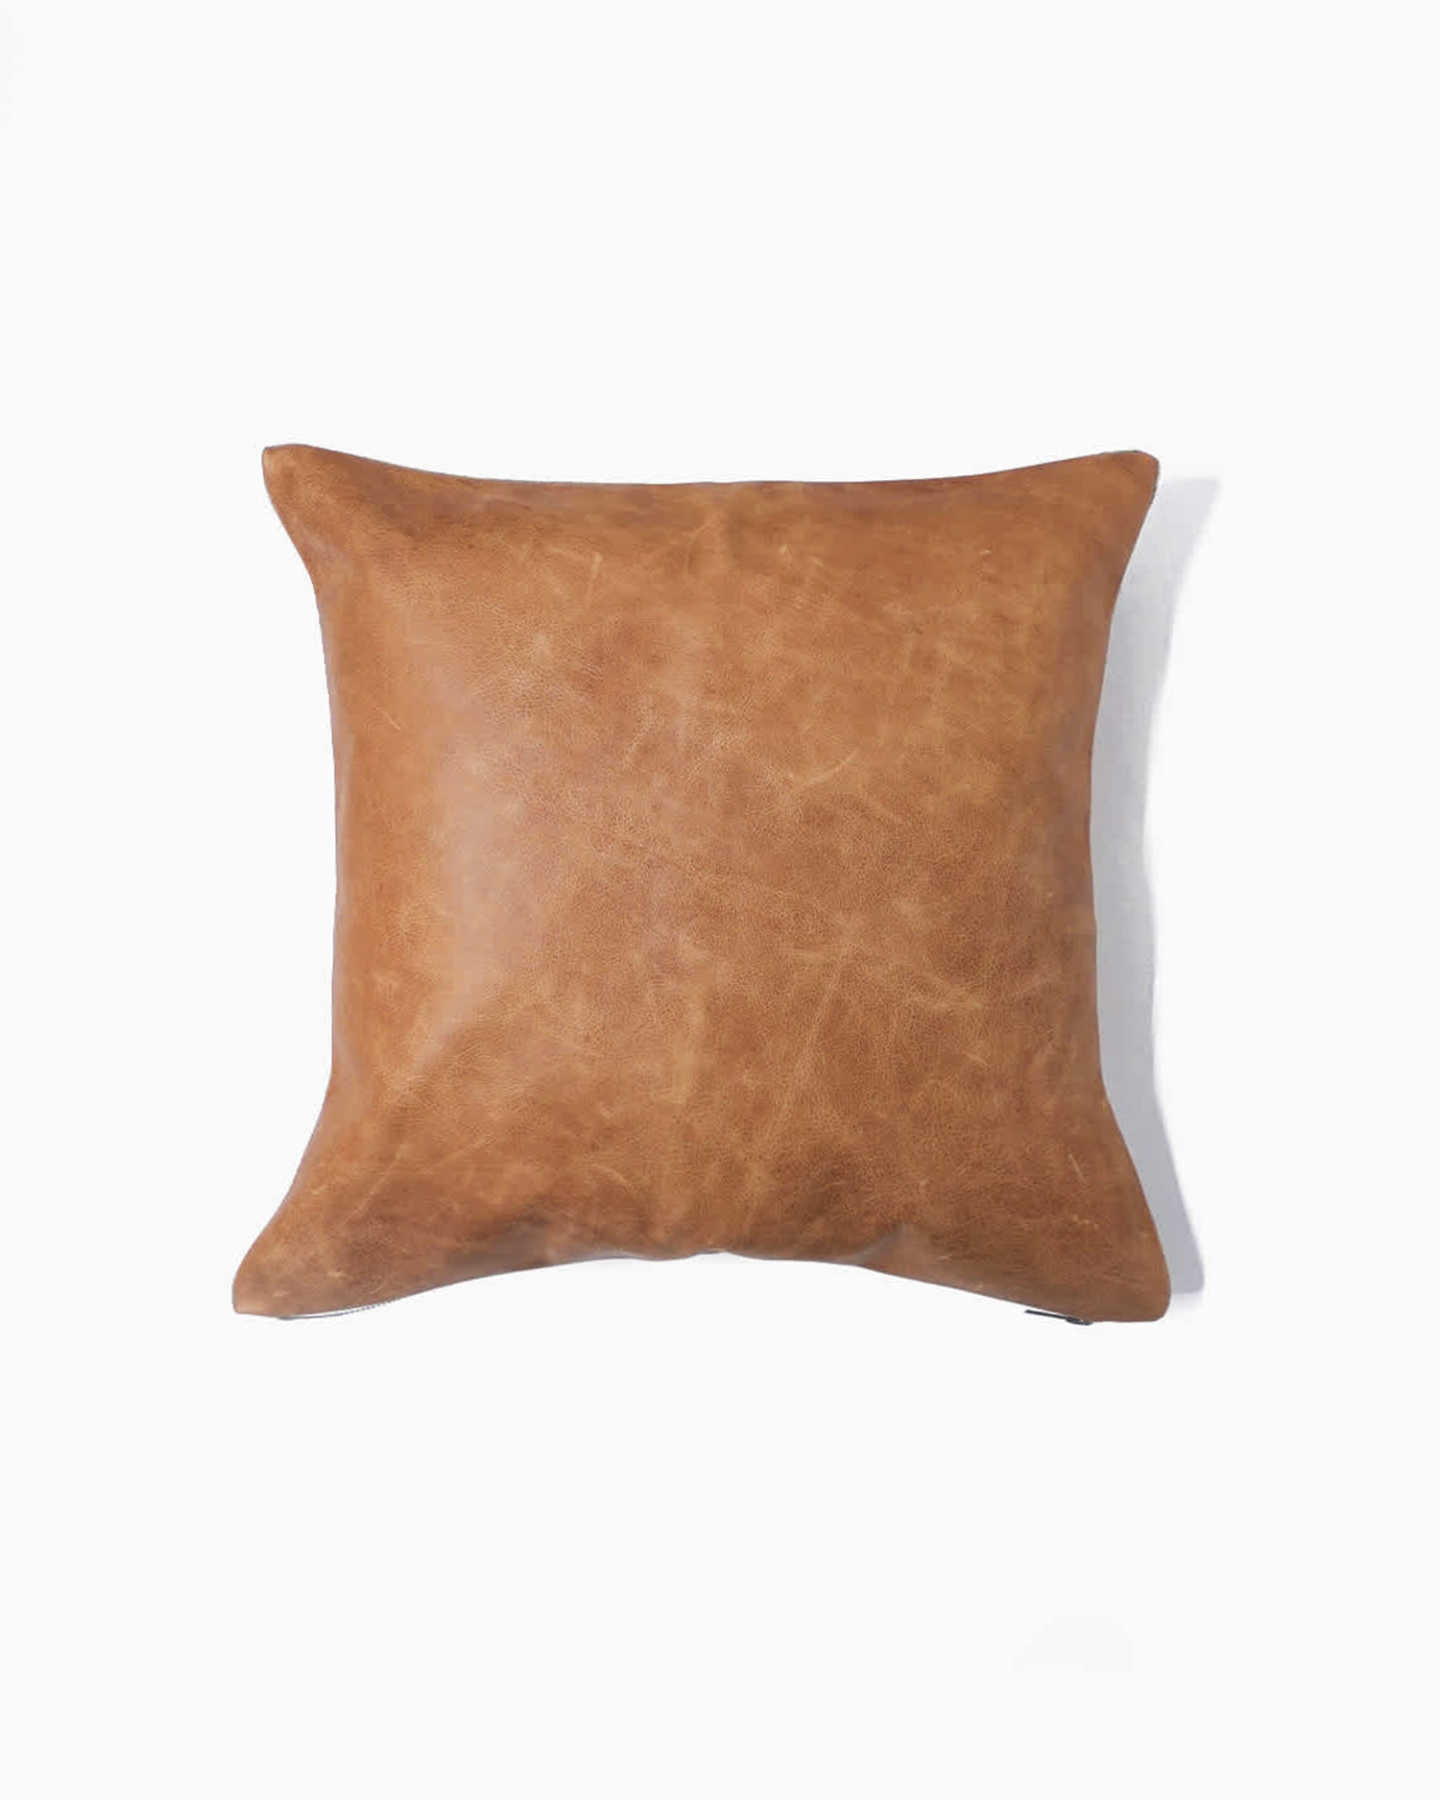 Pair With - Luxe Leather Pillow Cover  - Coco